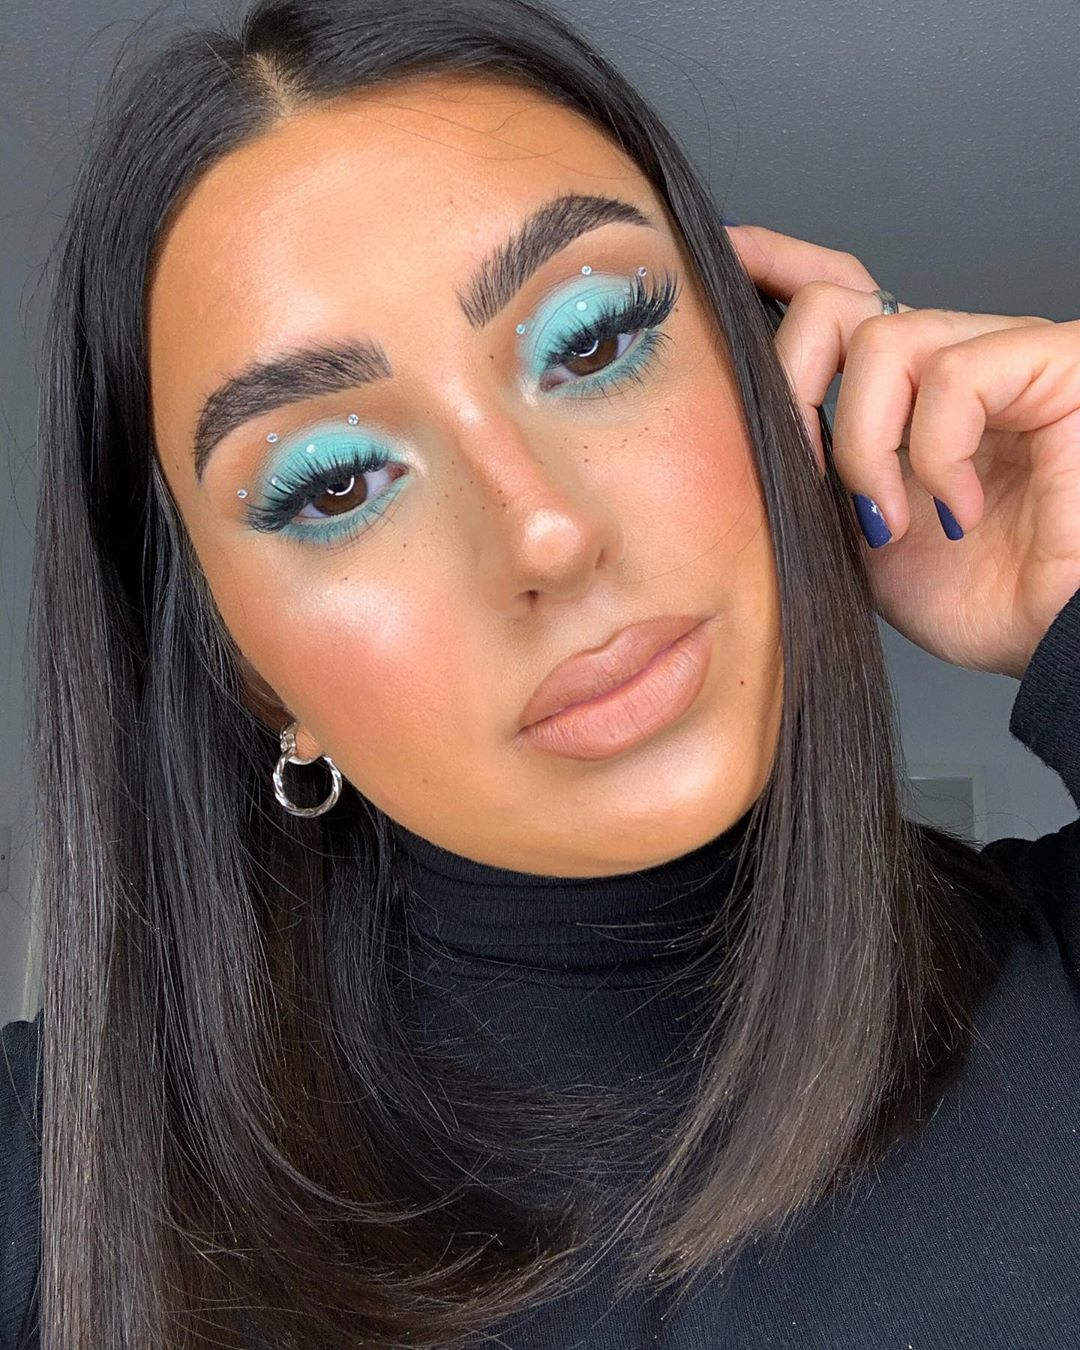 This Is Probably My Favourite Look I'Ve - Makeup Tutorials